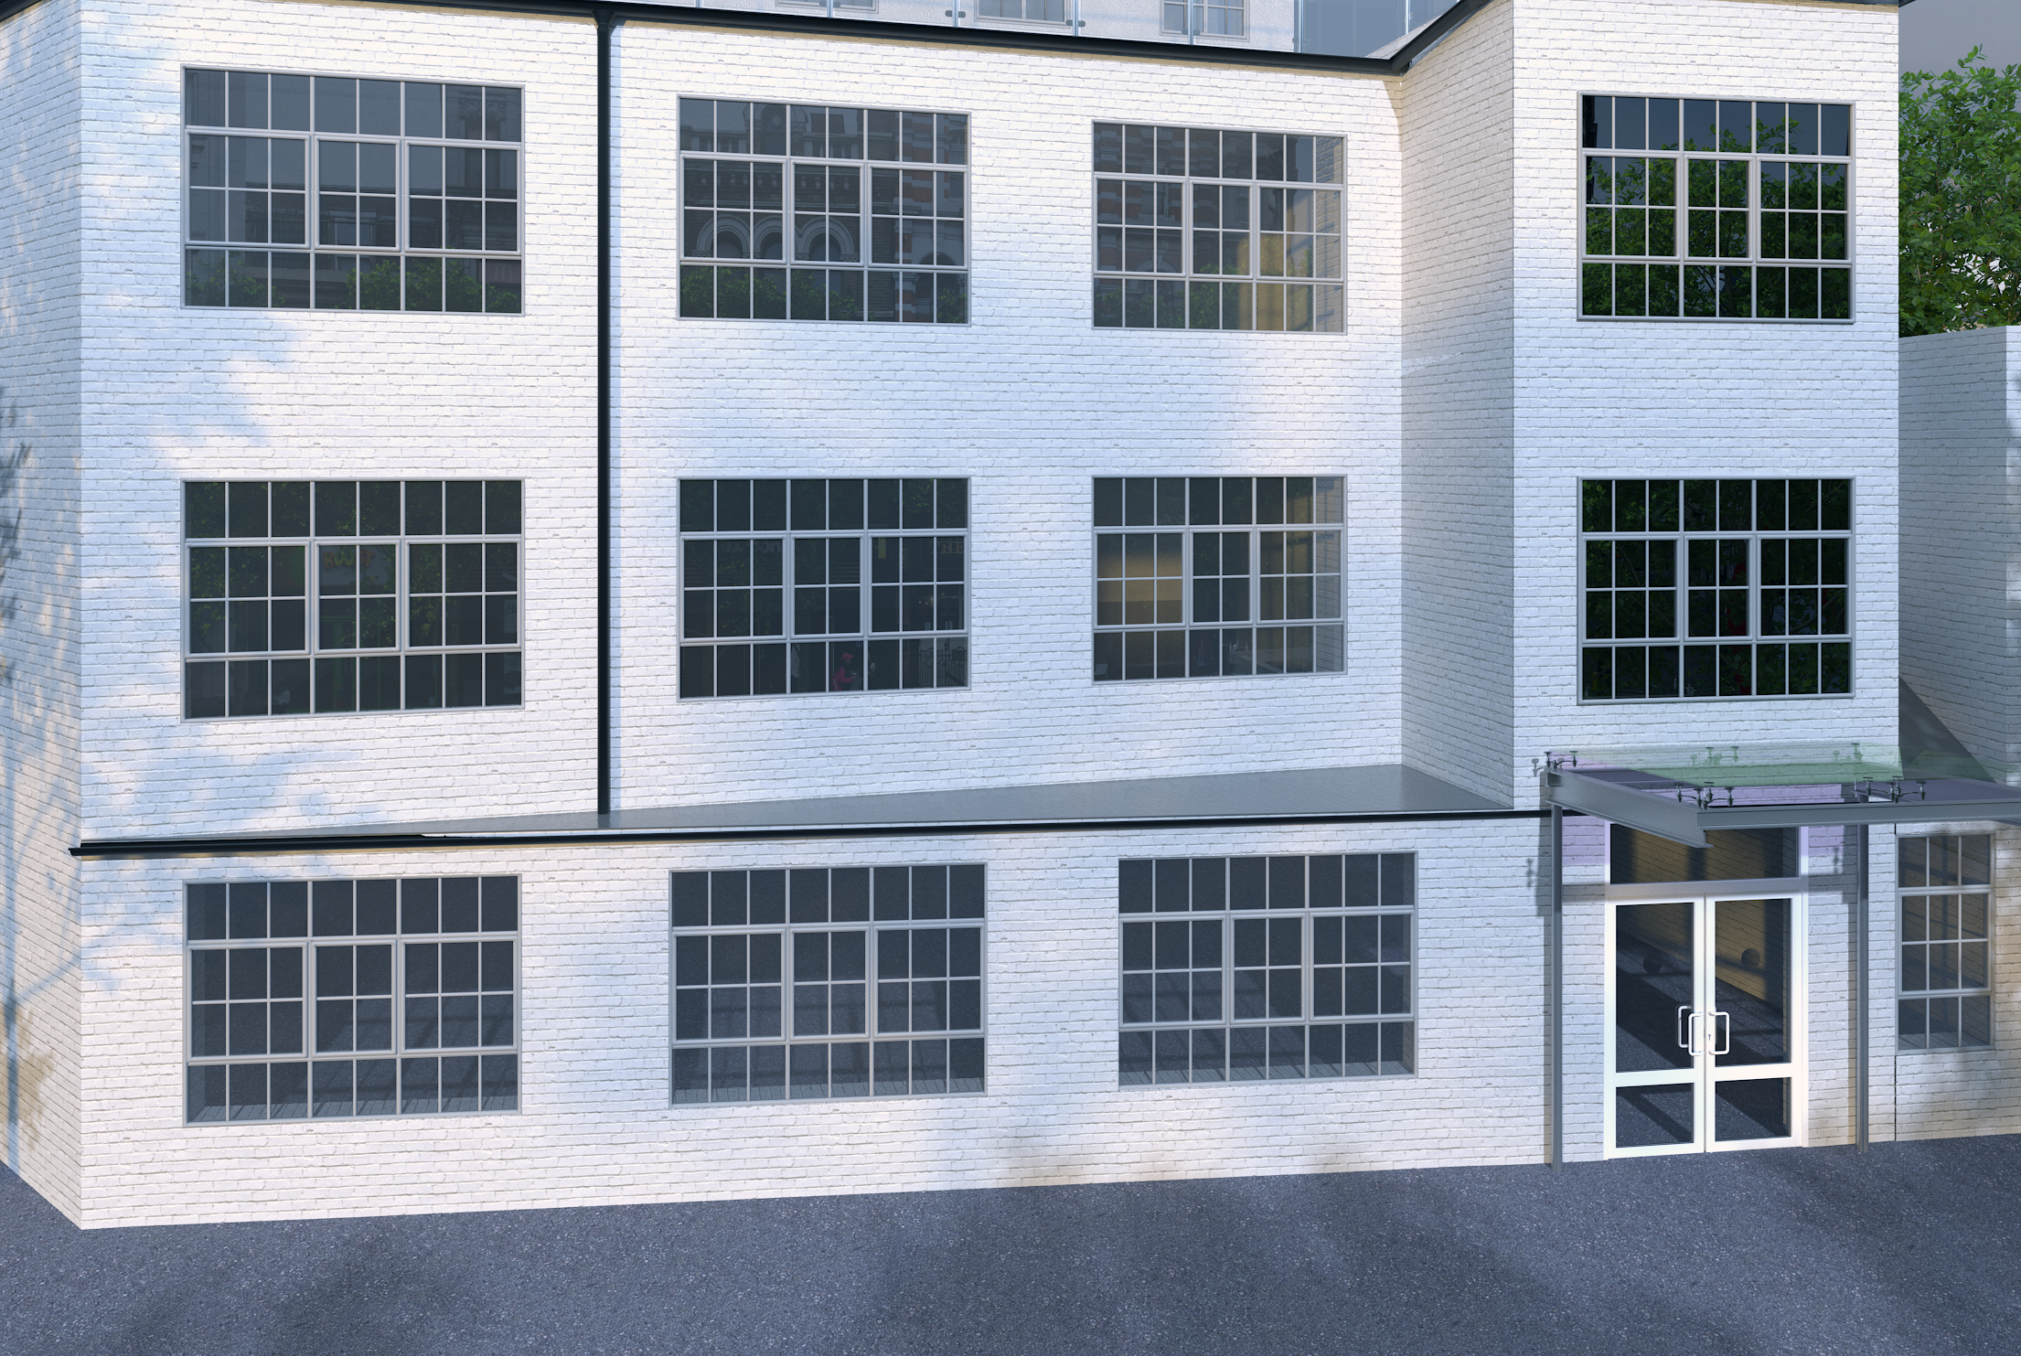 CAMDEN ROAD FREEHOLD FOR SALE 5,200 SQ FT WITH PLANNING PERMISSION FOR AN EXTRA FLOOR